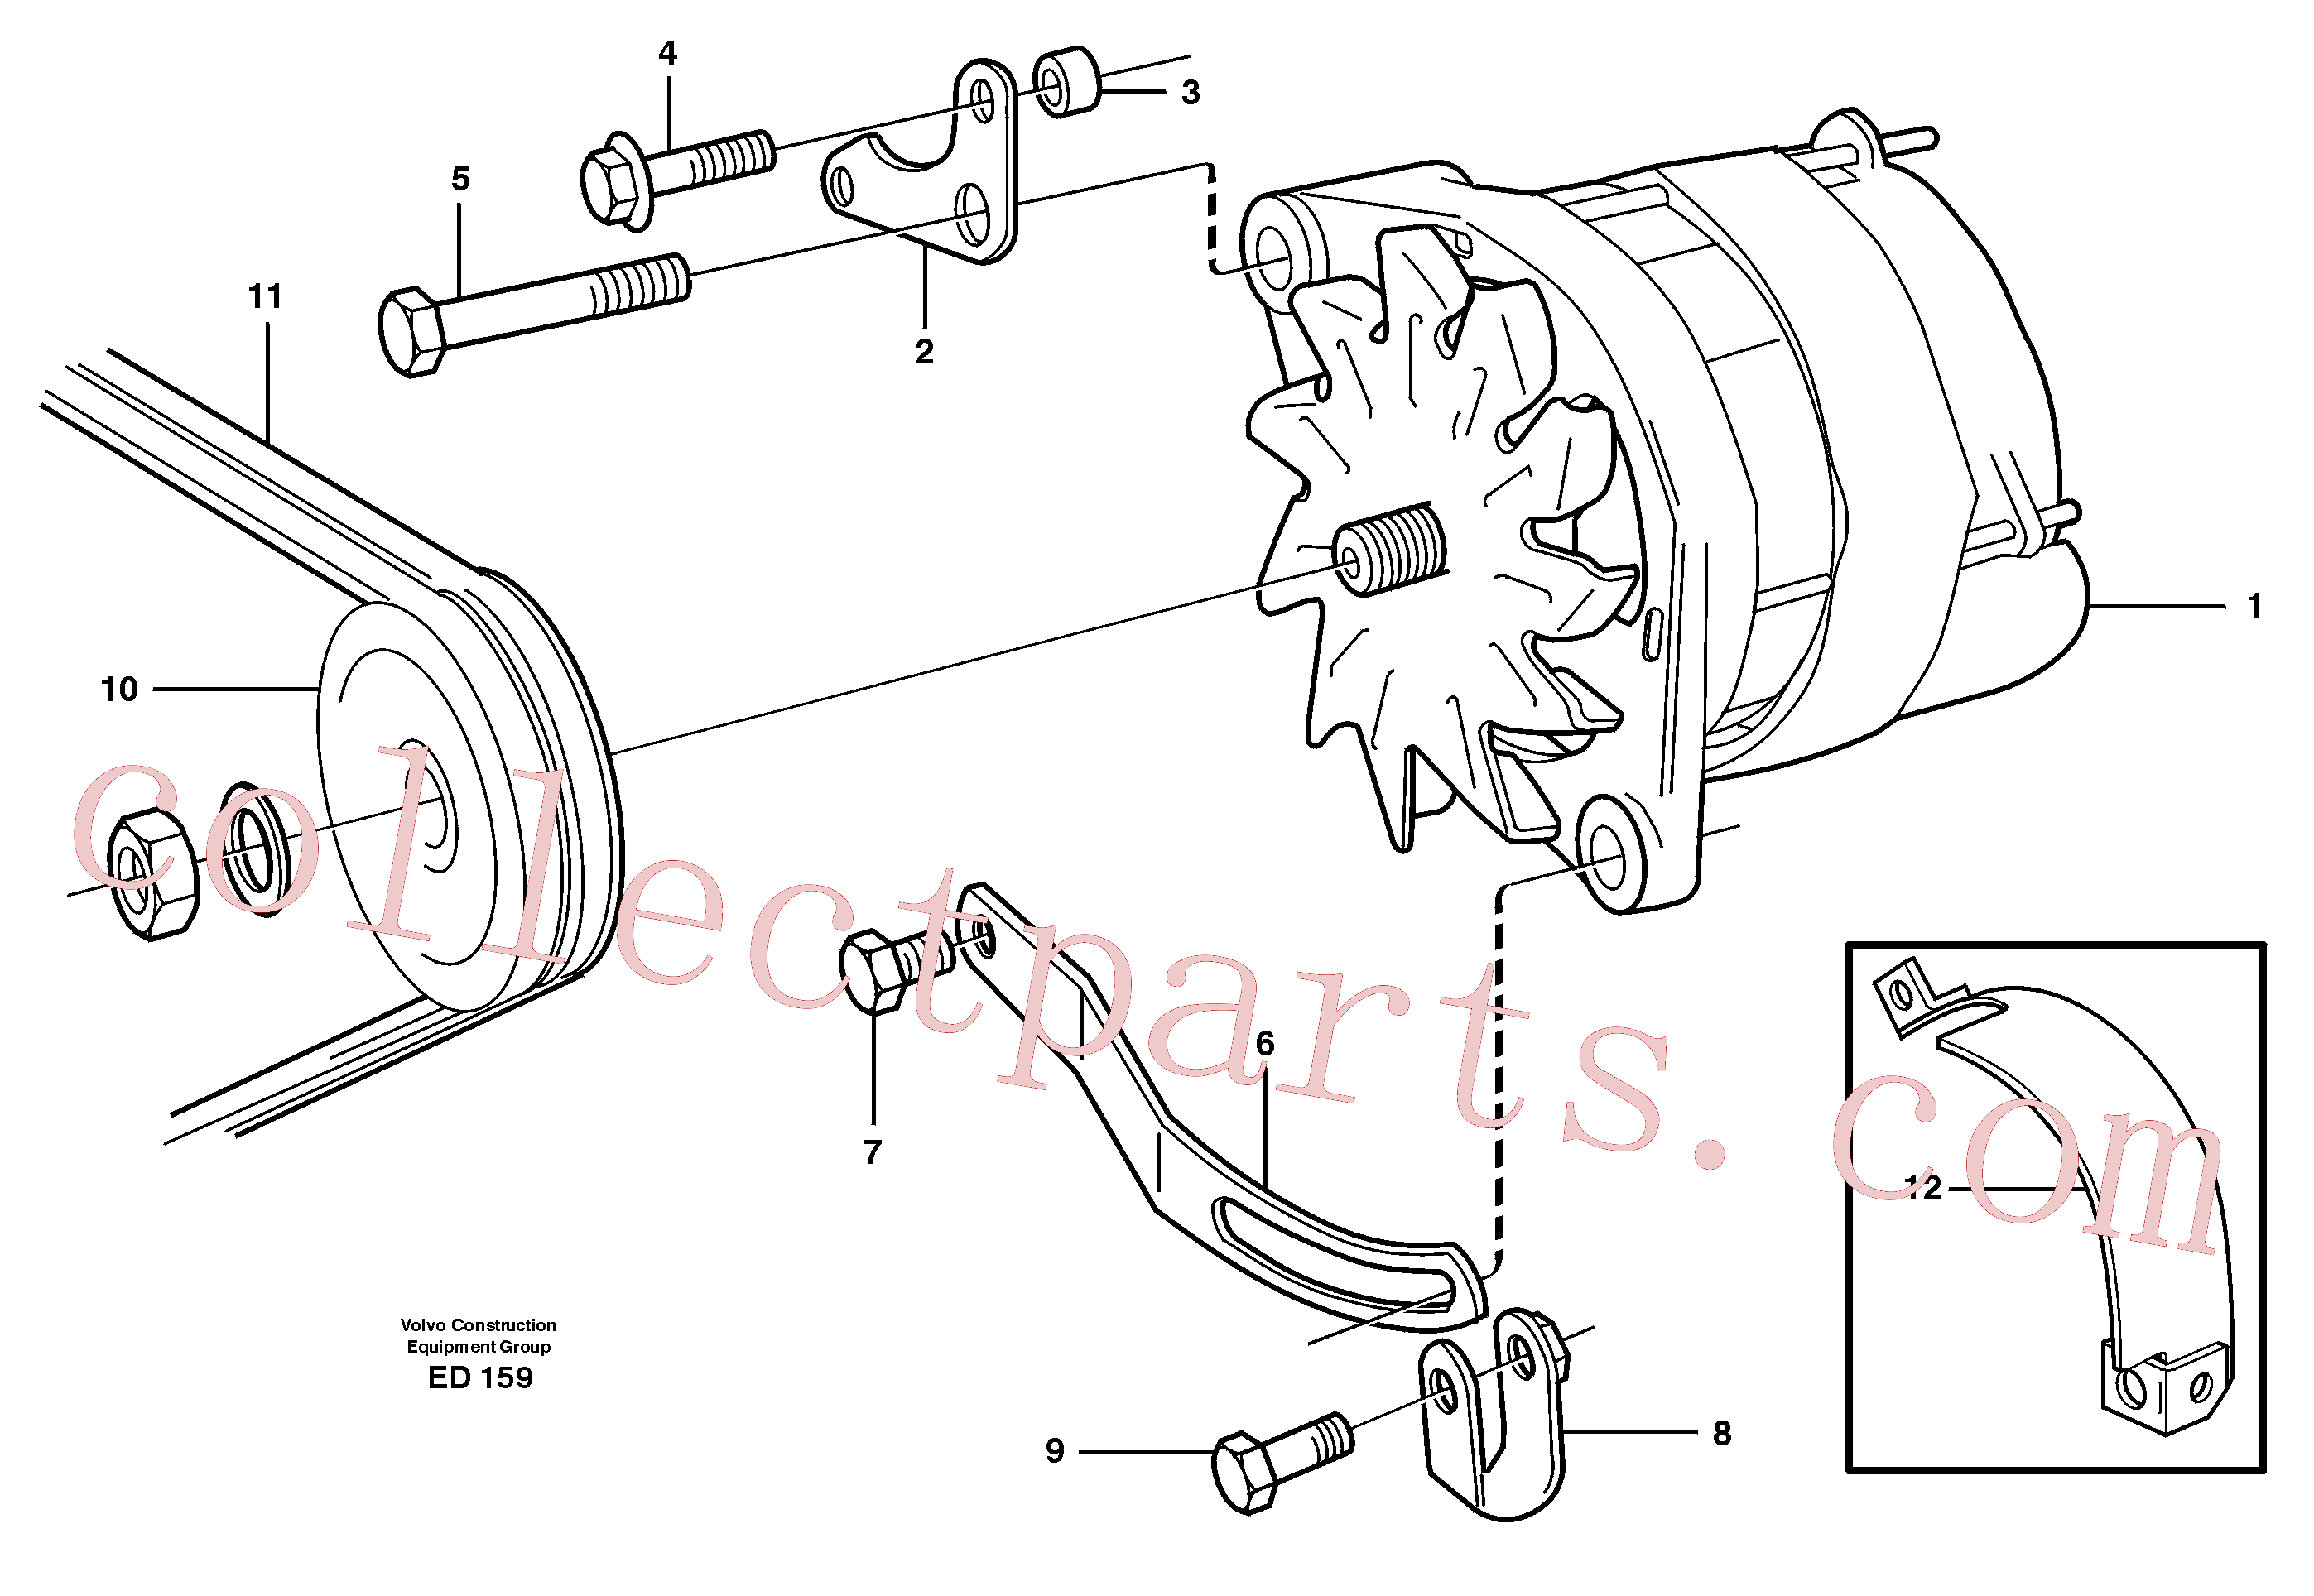 VOE466735 for Volvo Alternator with assembling details(ED159 assembly)